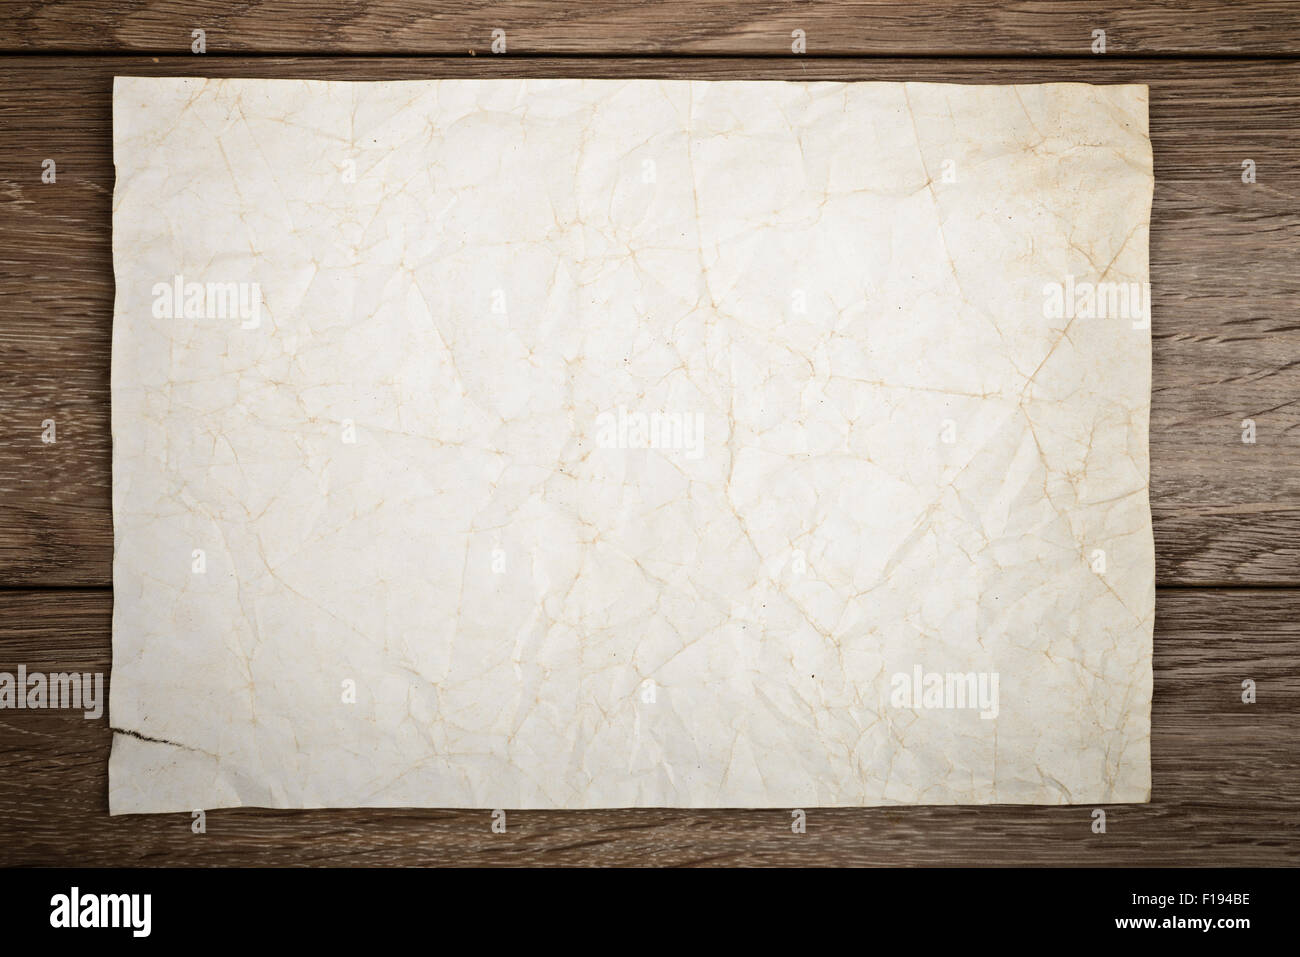 Old paper on wooden table - Stock Image